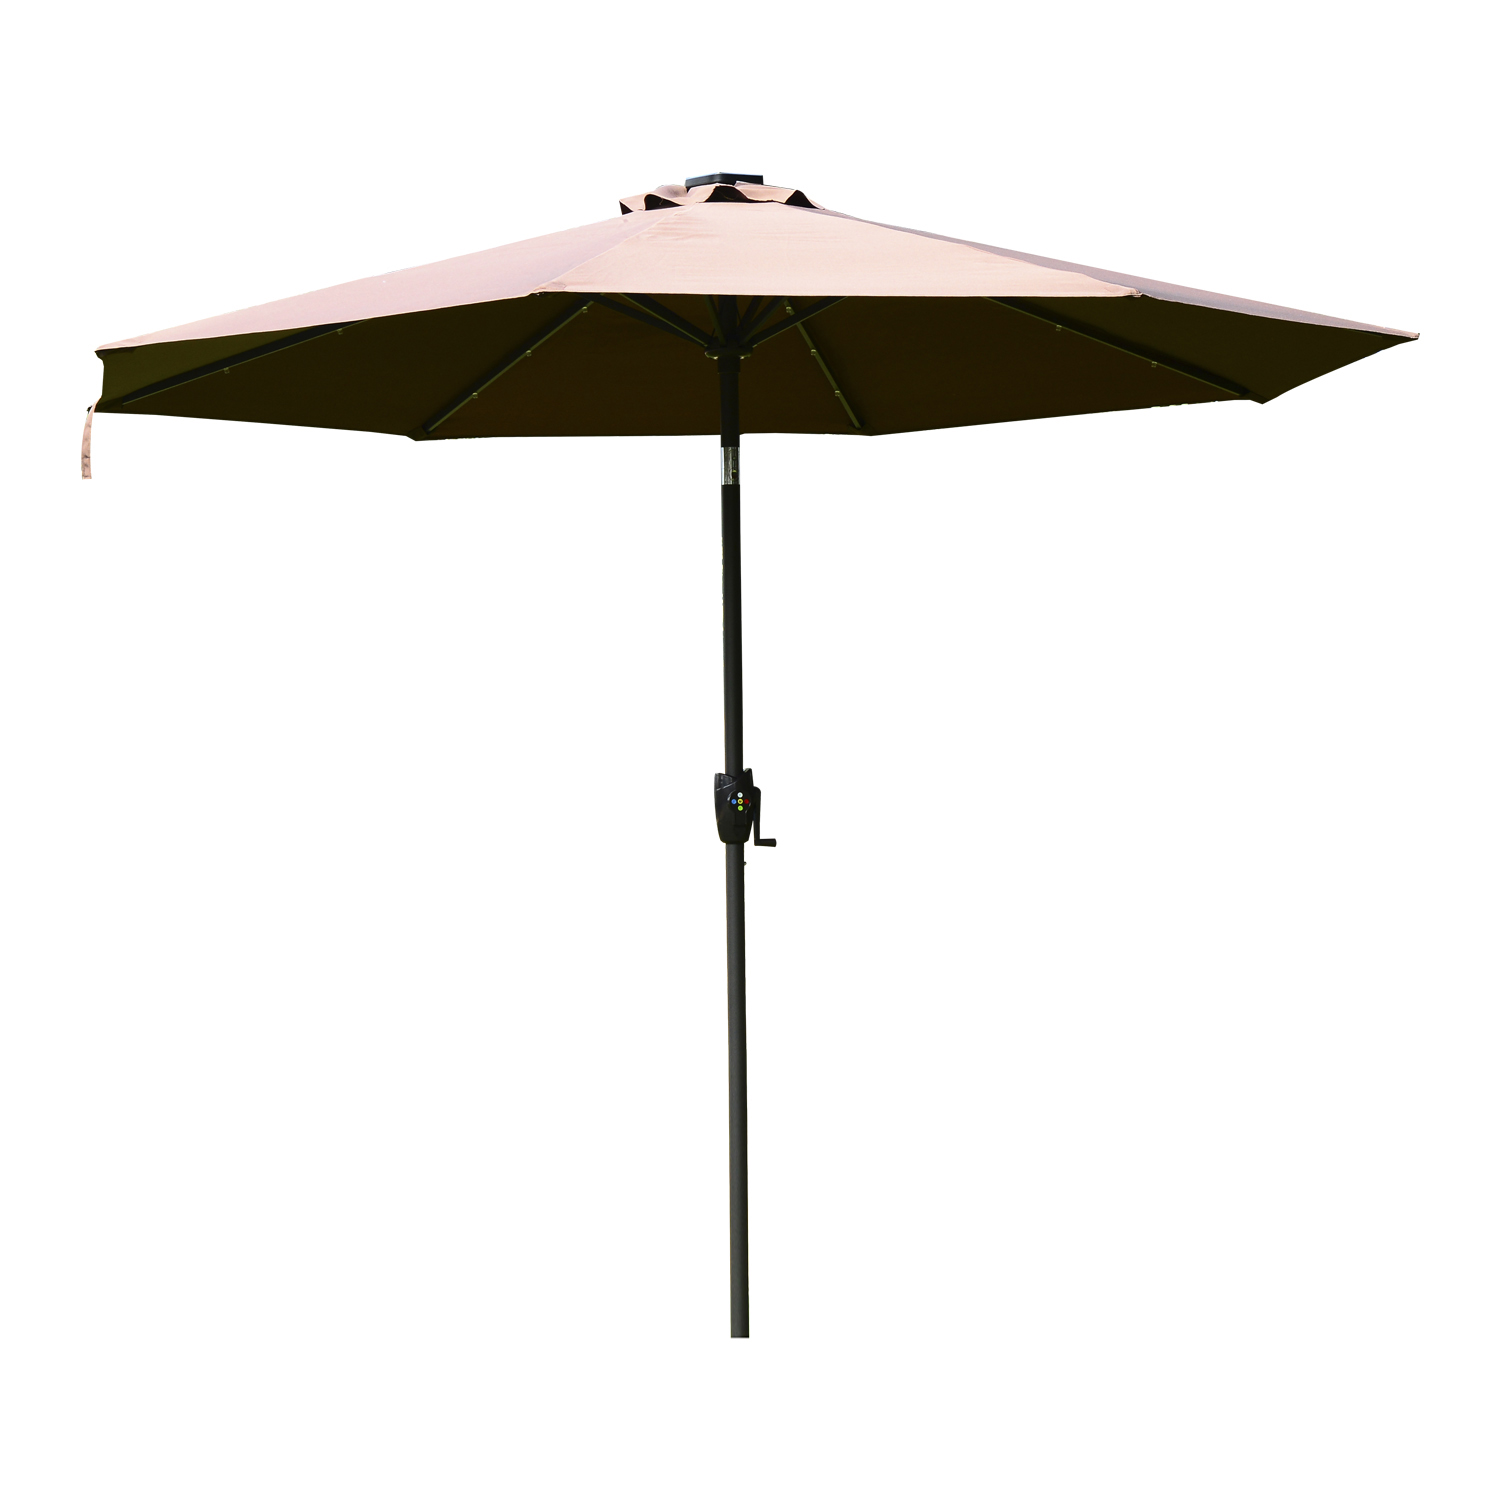 Image of CAD $109.99 Outsunny 9ft Solar LED Patio Umbrella Brown & Coffee / 9' Outdoor for Market and Garden, Parasol with Adjustable Light, w/ Light Garden Canada 25093571787